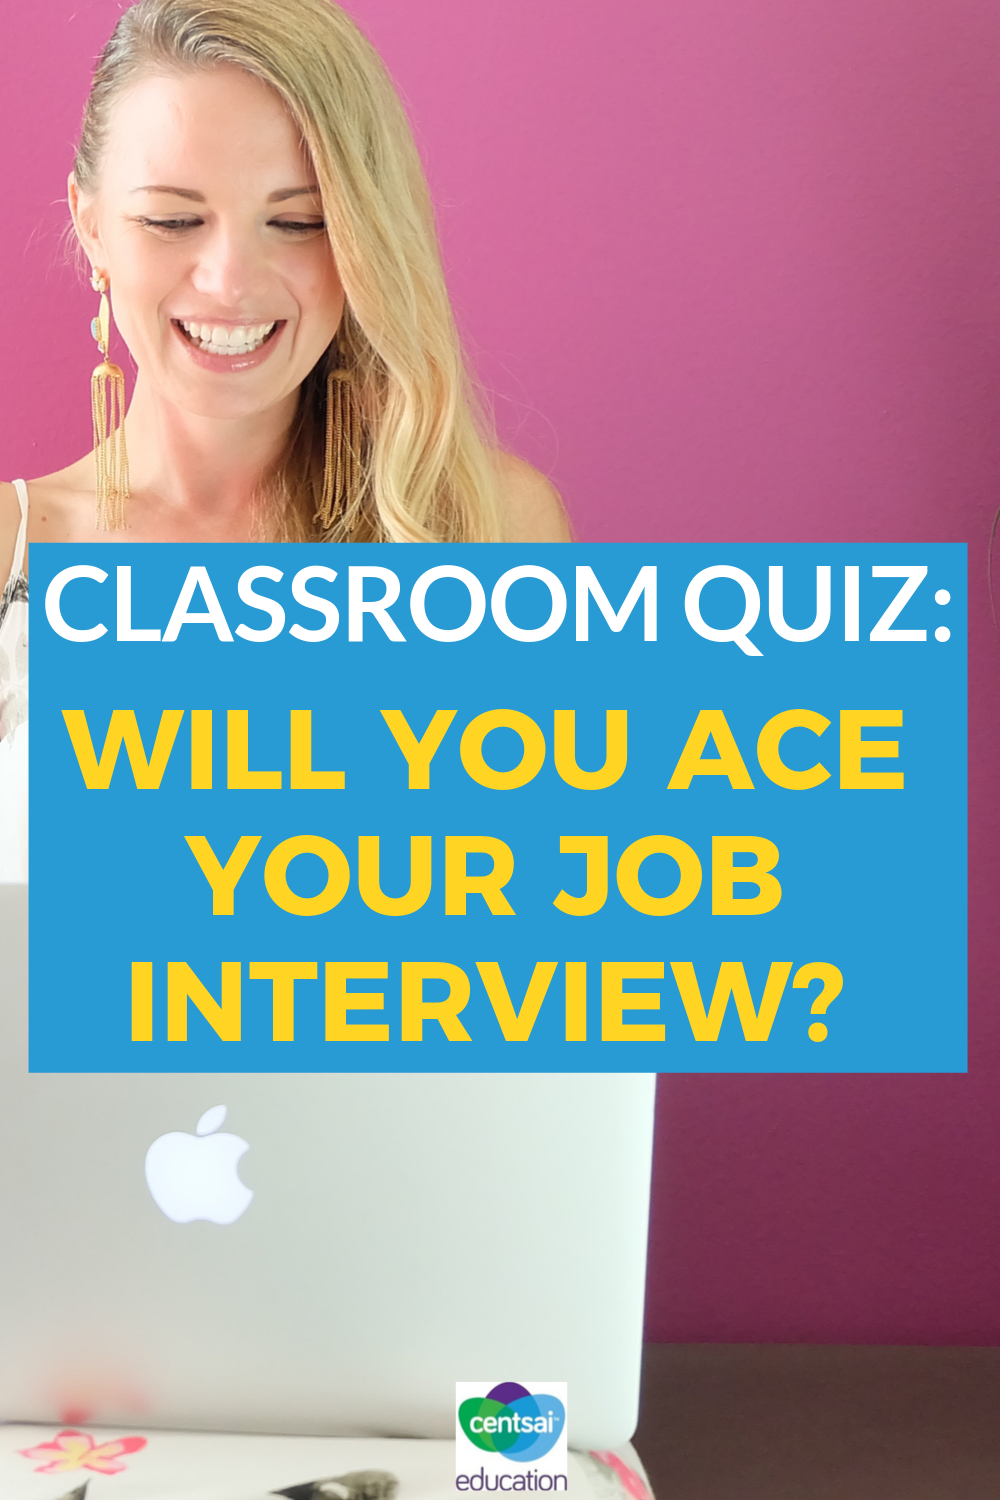 Will You Ace Your Job Interview? (featured image)